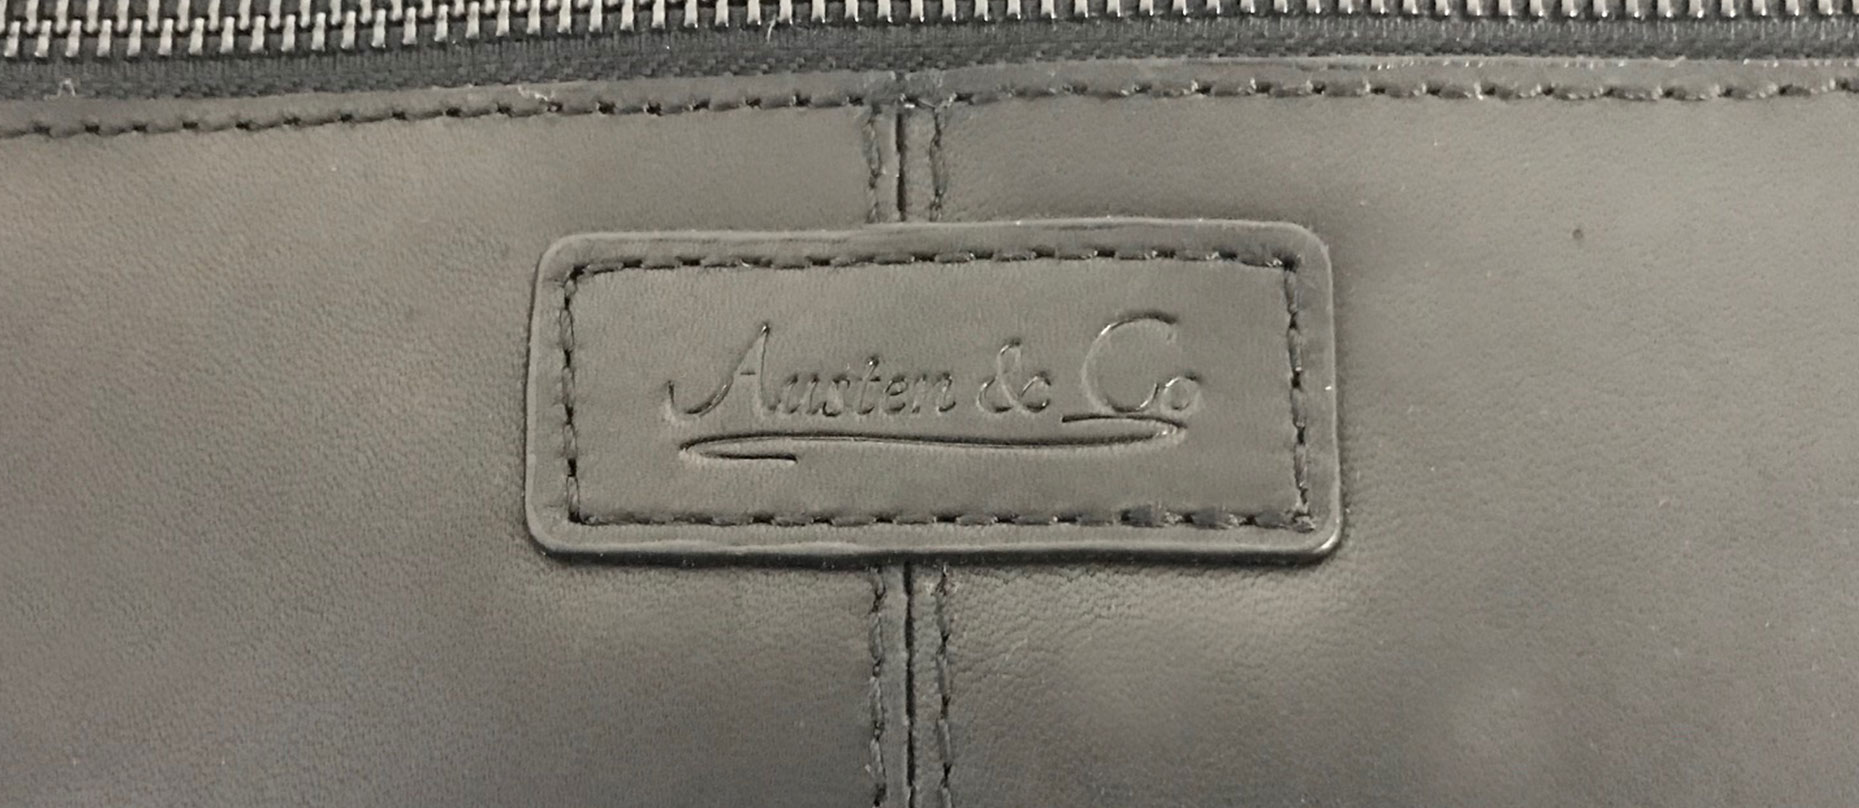 Black Wash Bag Austen & Co Logo